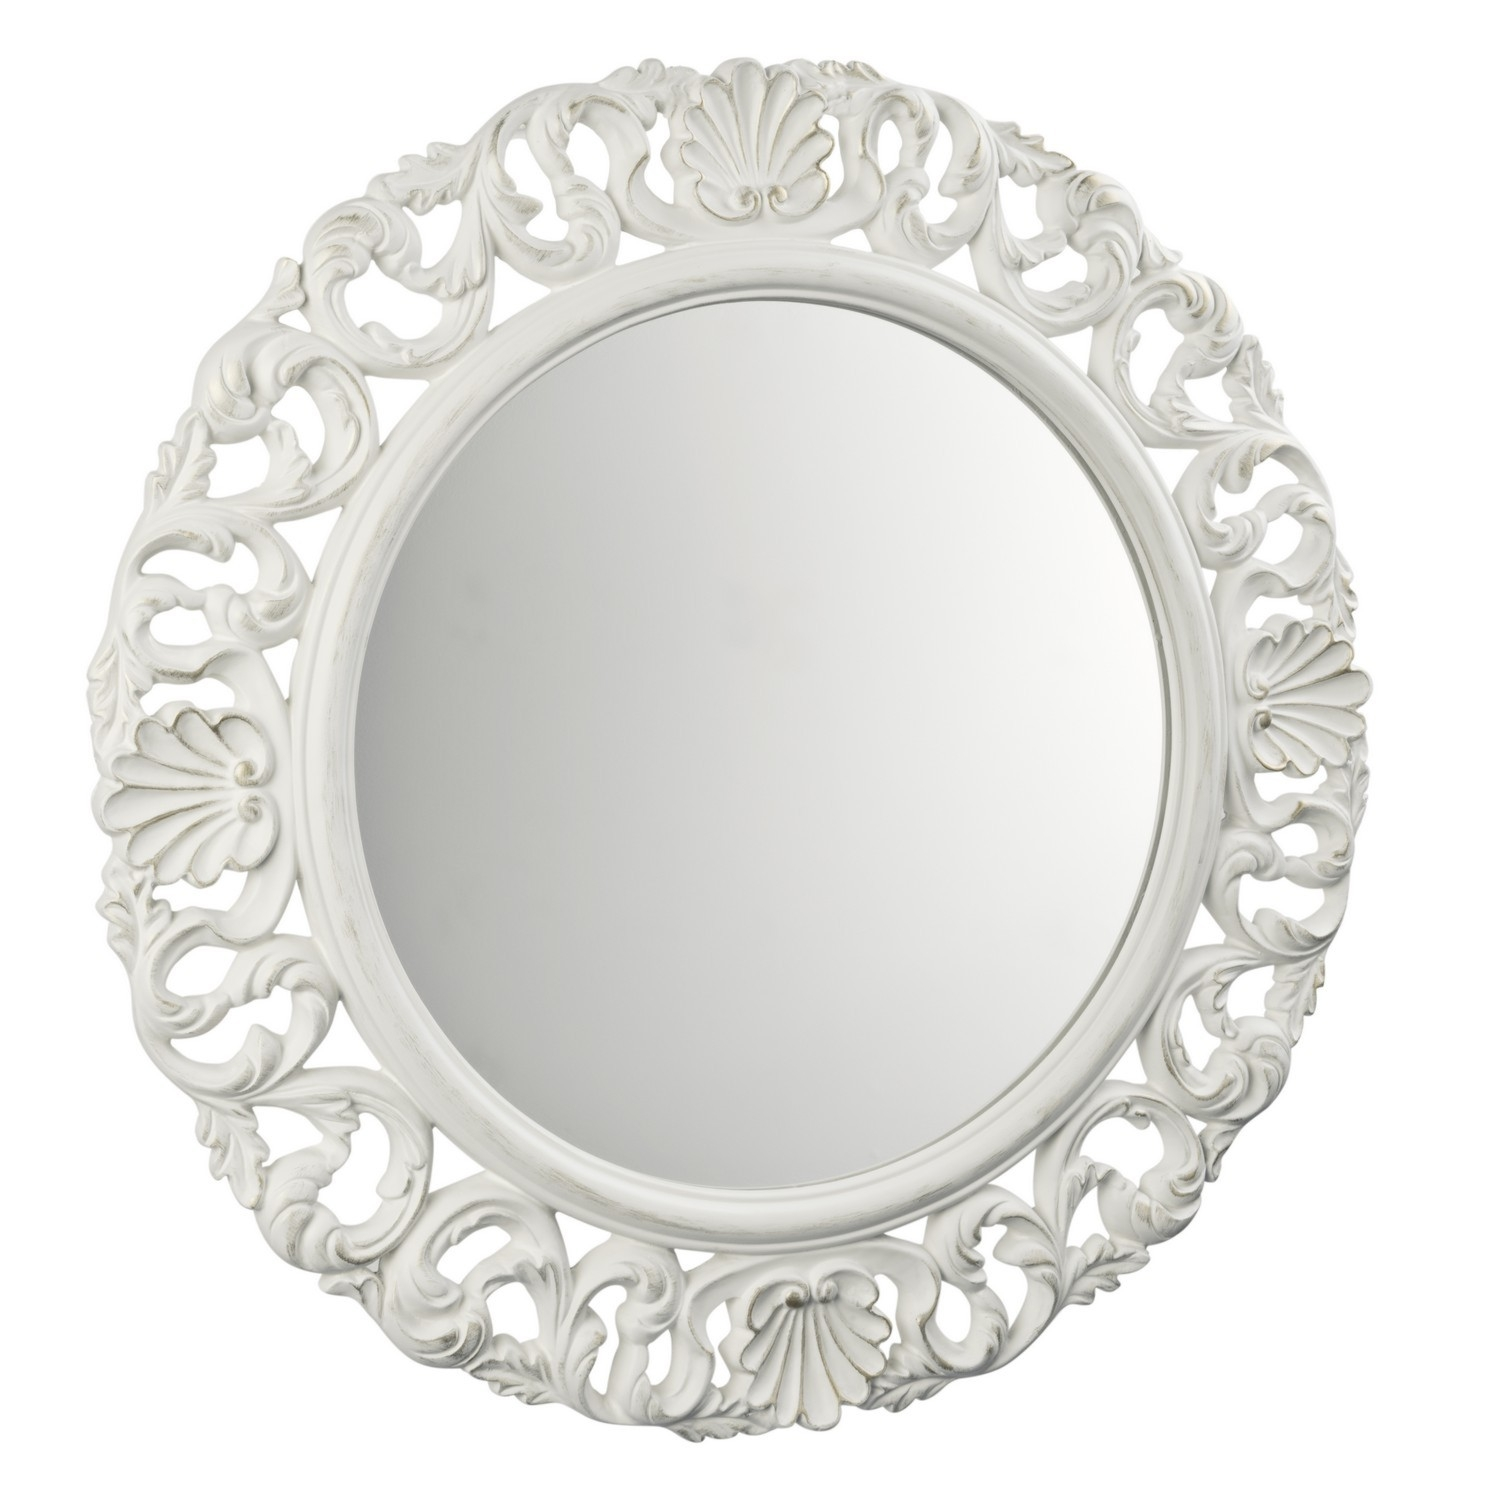 Antique Baroque Mirror White Bathroom Pinterest Baroque In Baroque Mirror White (Image 2 of 15)